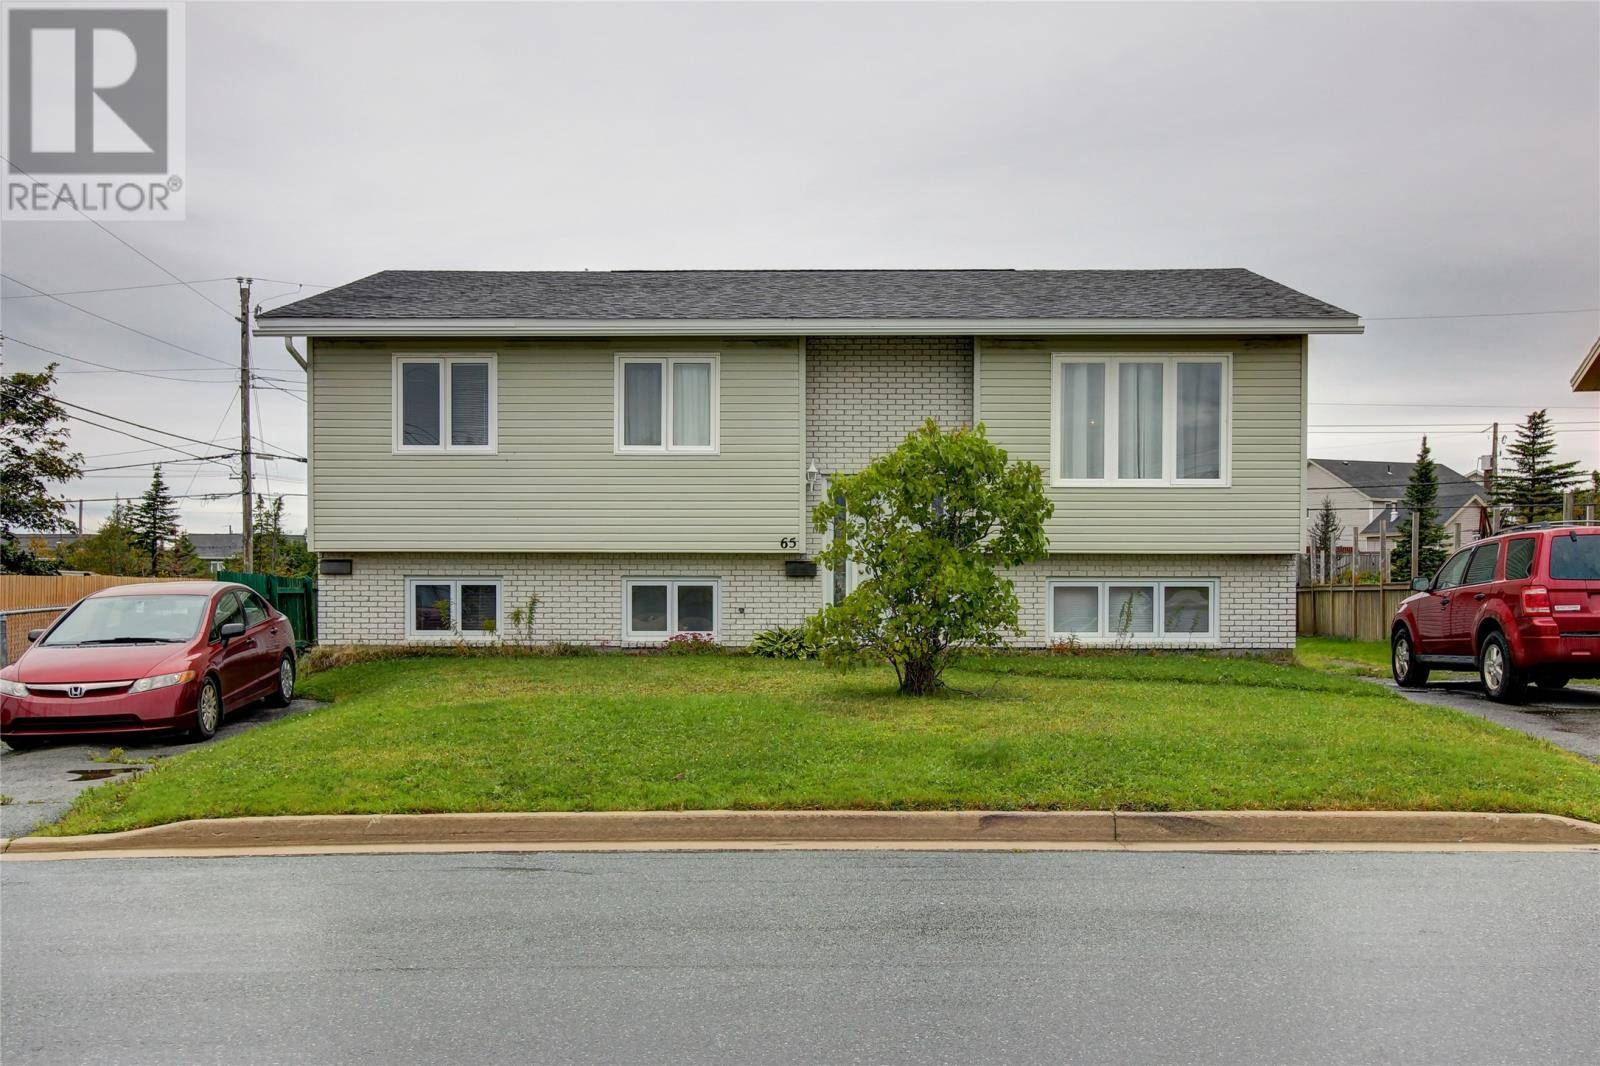 House for sale at 65 Holden St Mount Pearl Newfoundland - MLS: 1209036